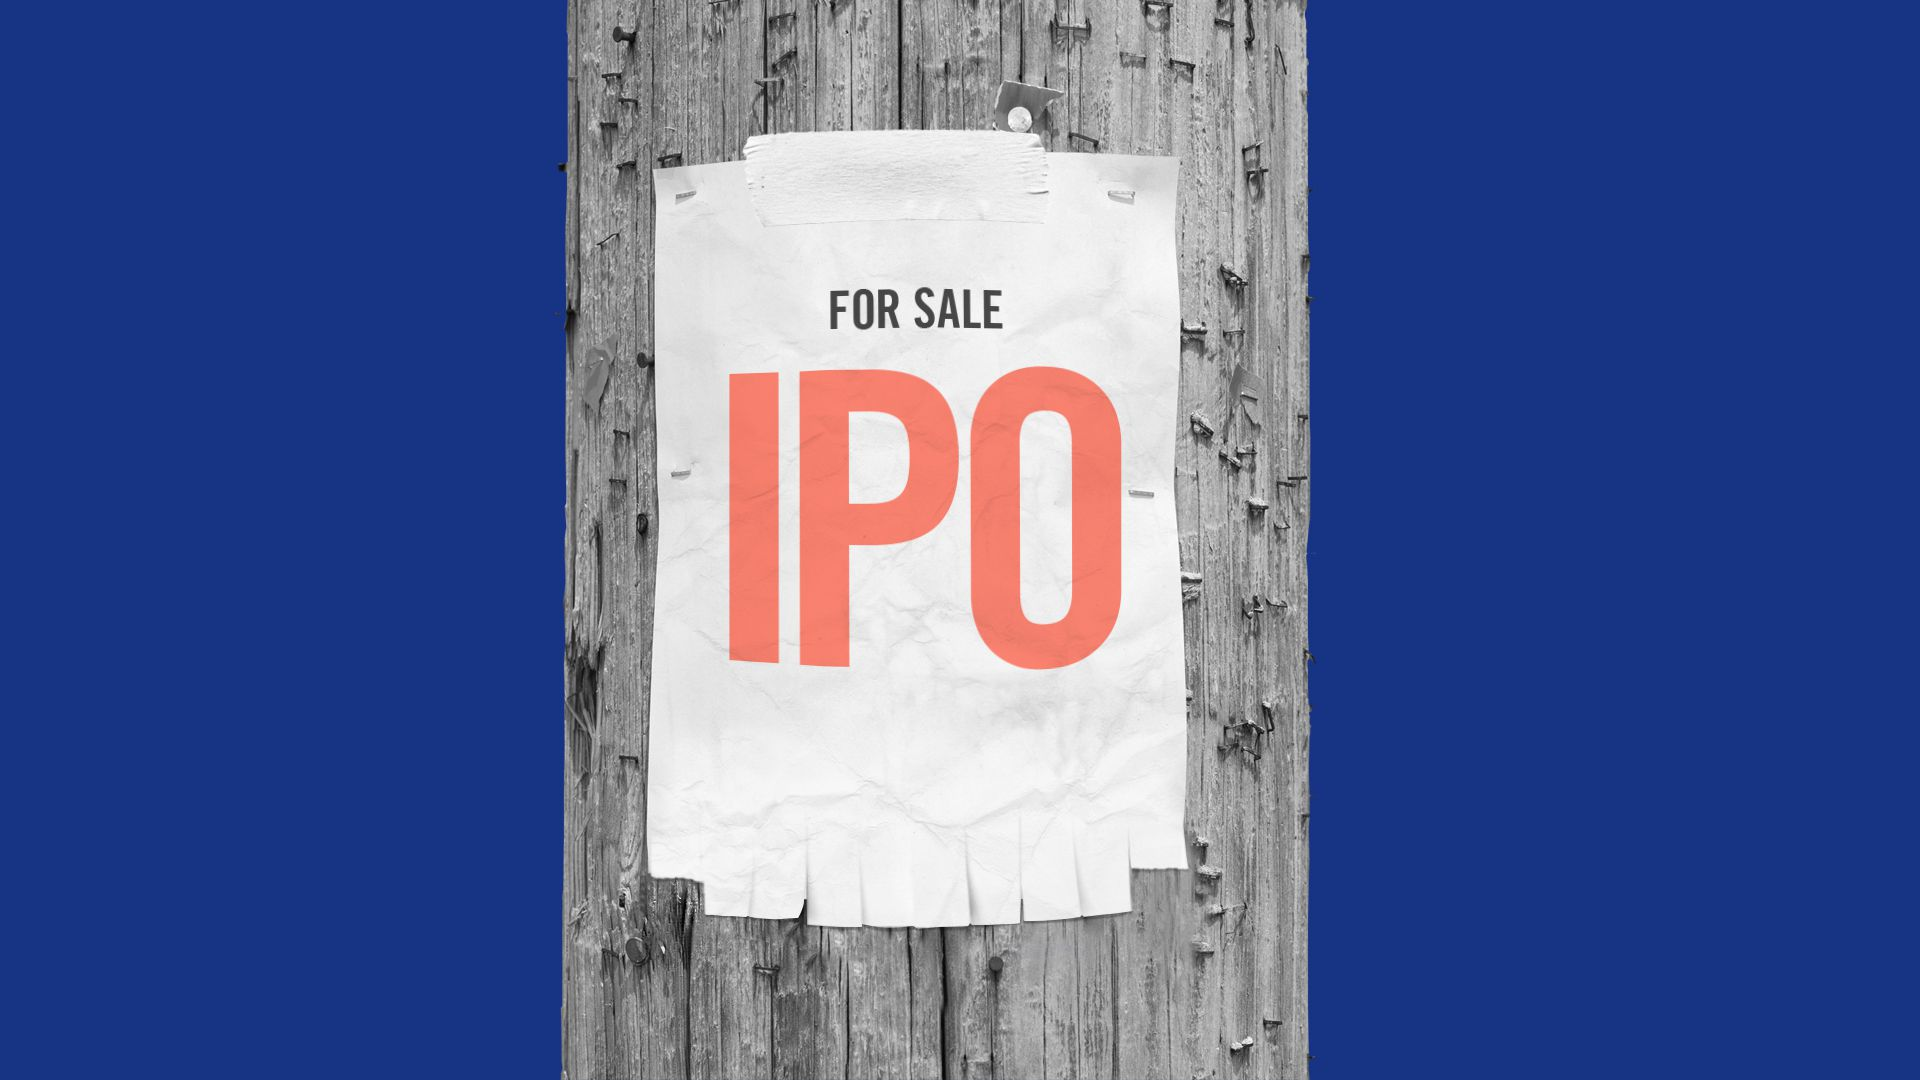 """Illustration of advertisement on a telephone pole with ripped off tabs. The ad has """"For Sale IPO"""""""